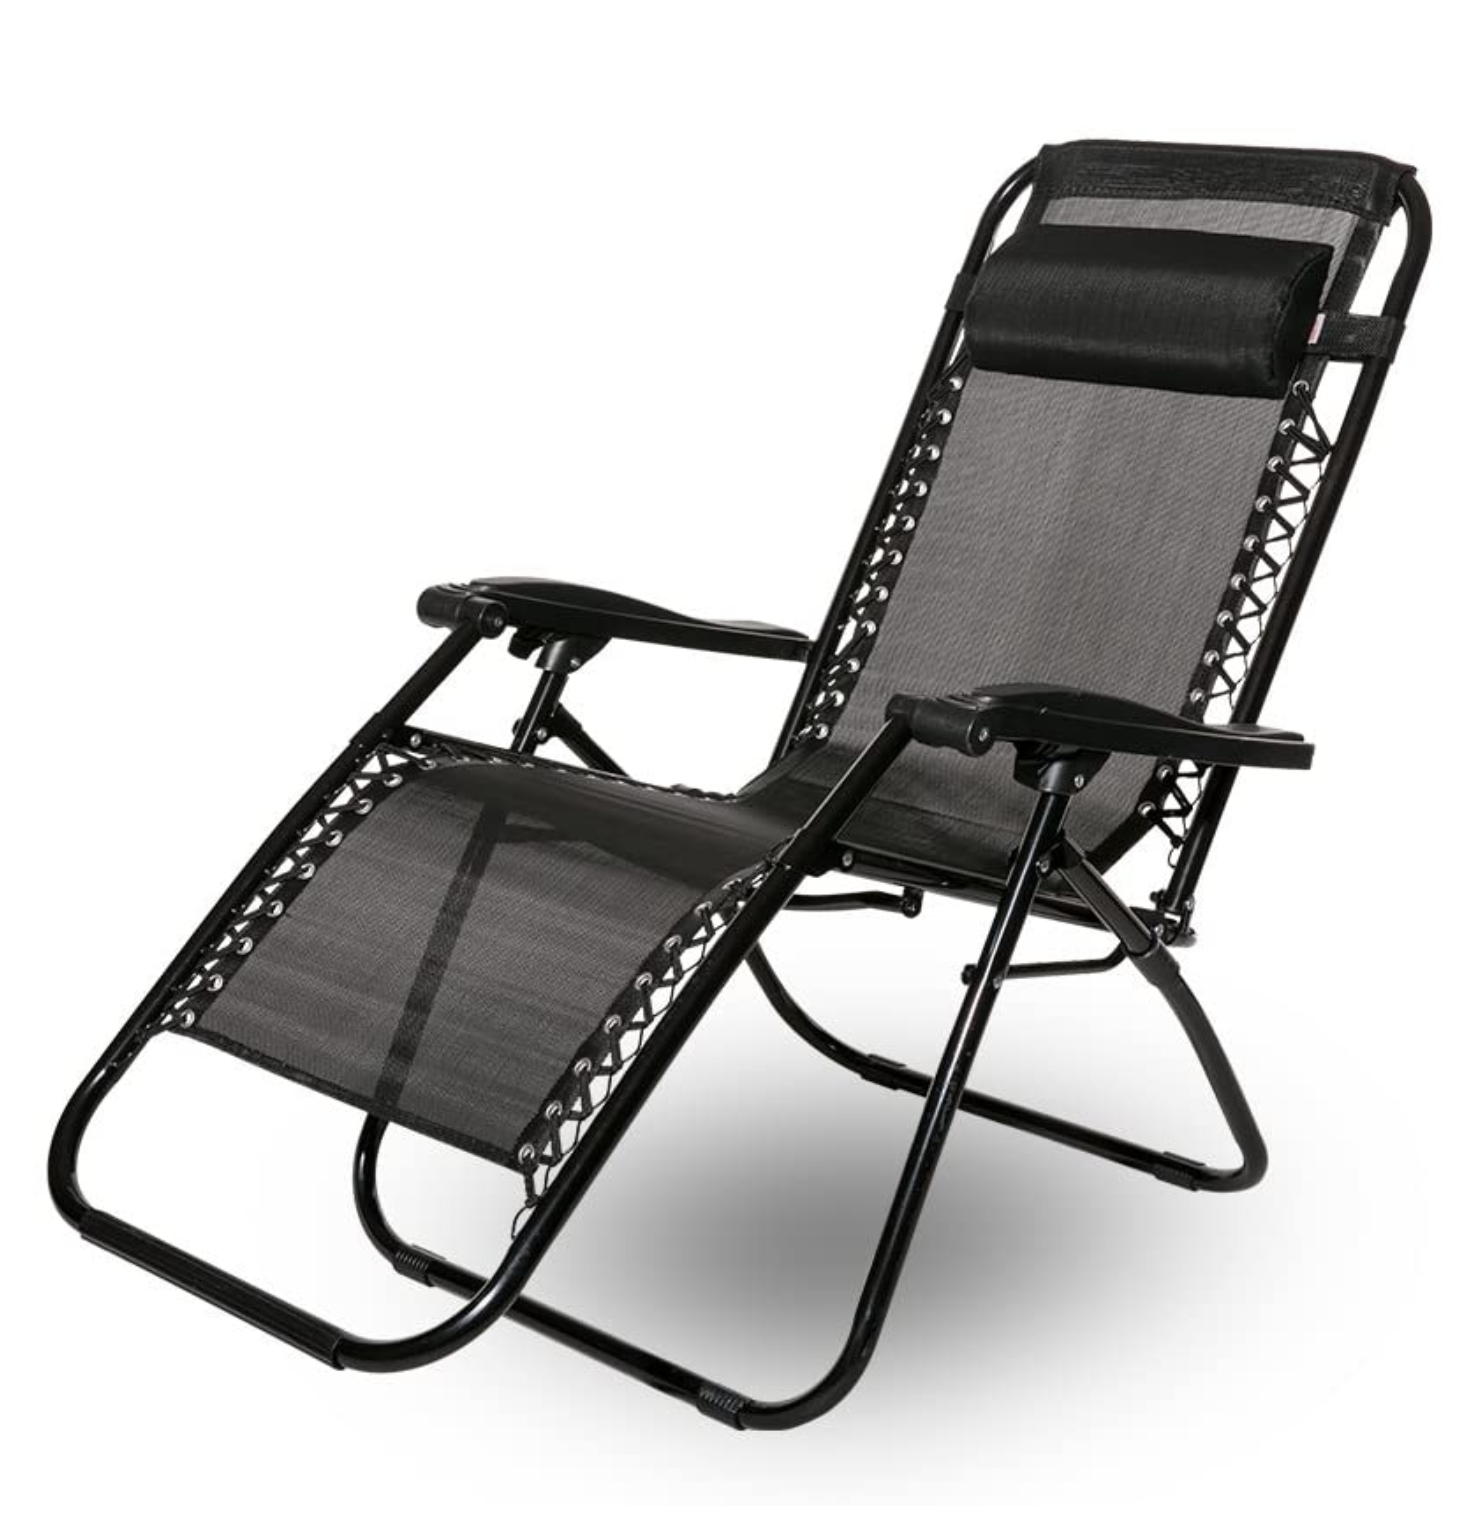 Outdoor patio sunloungers